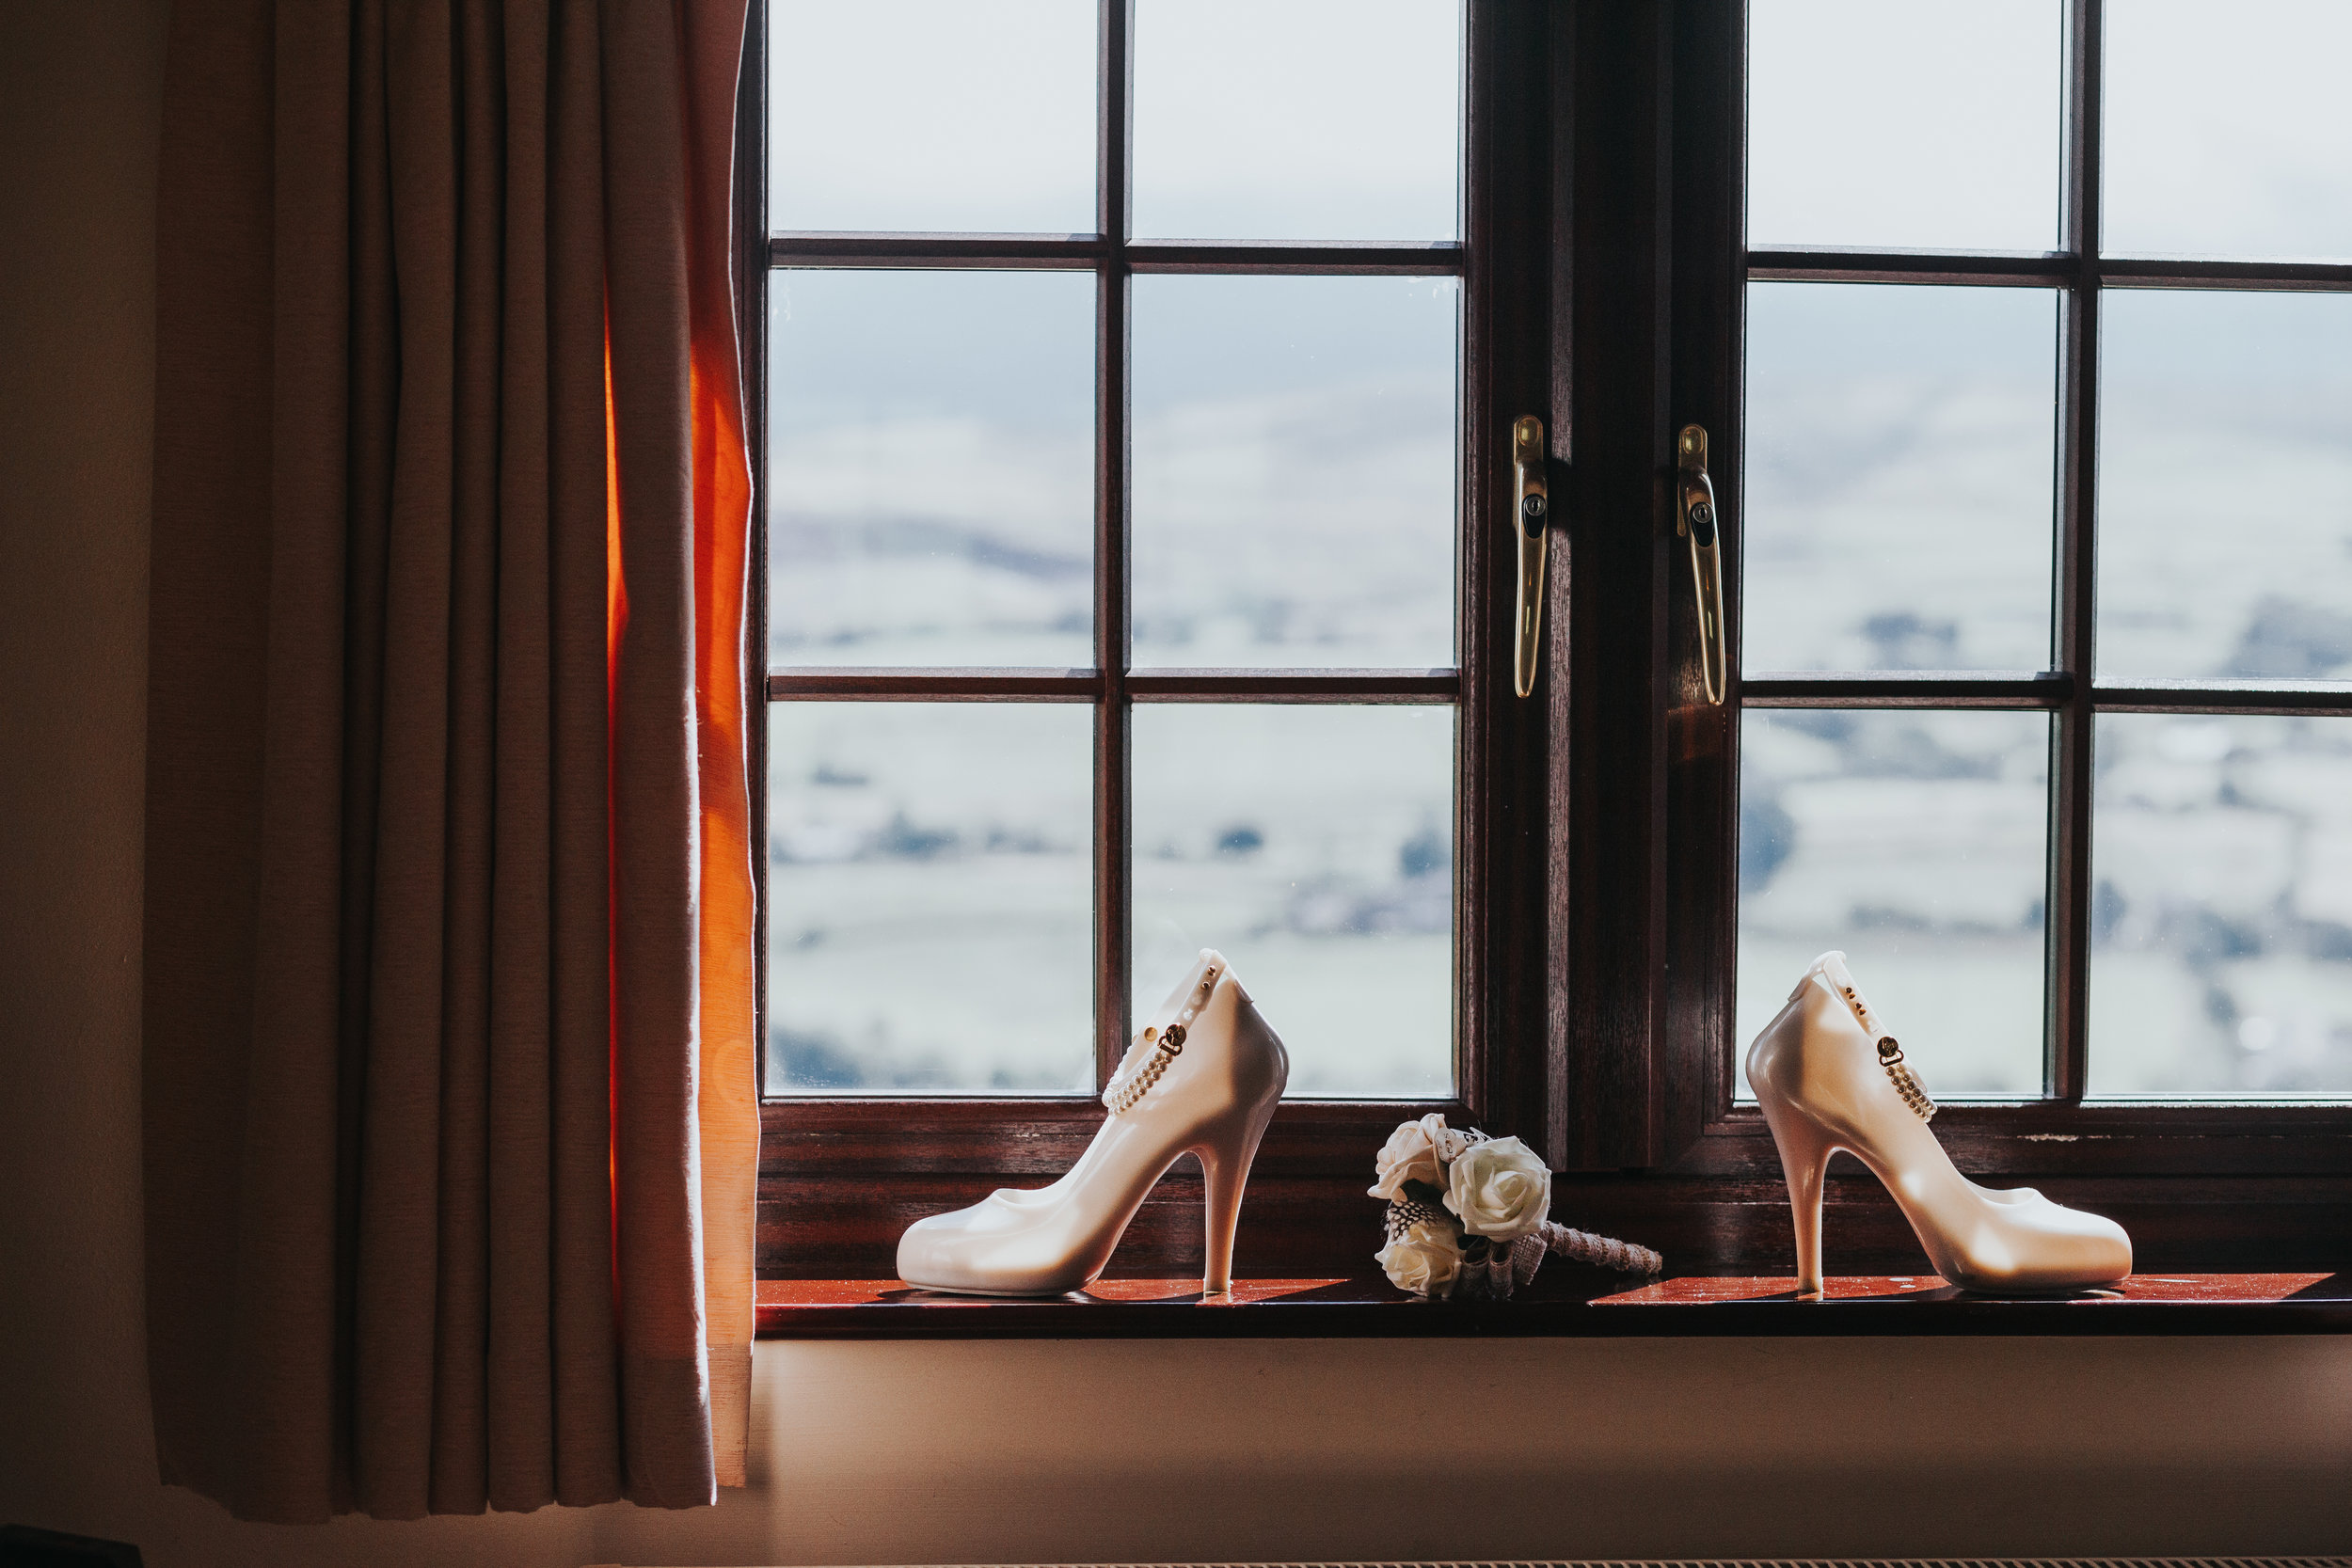 Brides jelly heeled shoes in hotel window, the light coming through them makes them light up like glass slippers, accompanied by chipper child's hand made paper flowers. (Chipper child didn't make them, a professional did)